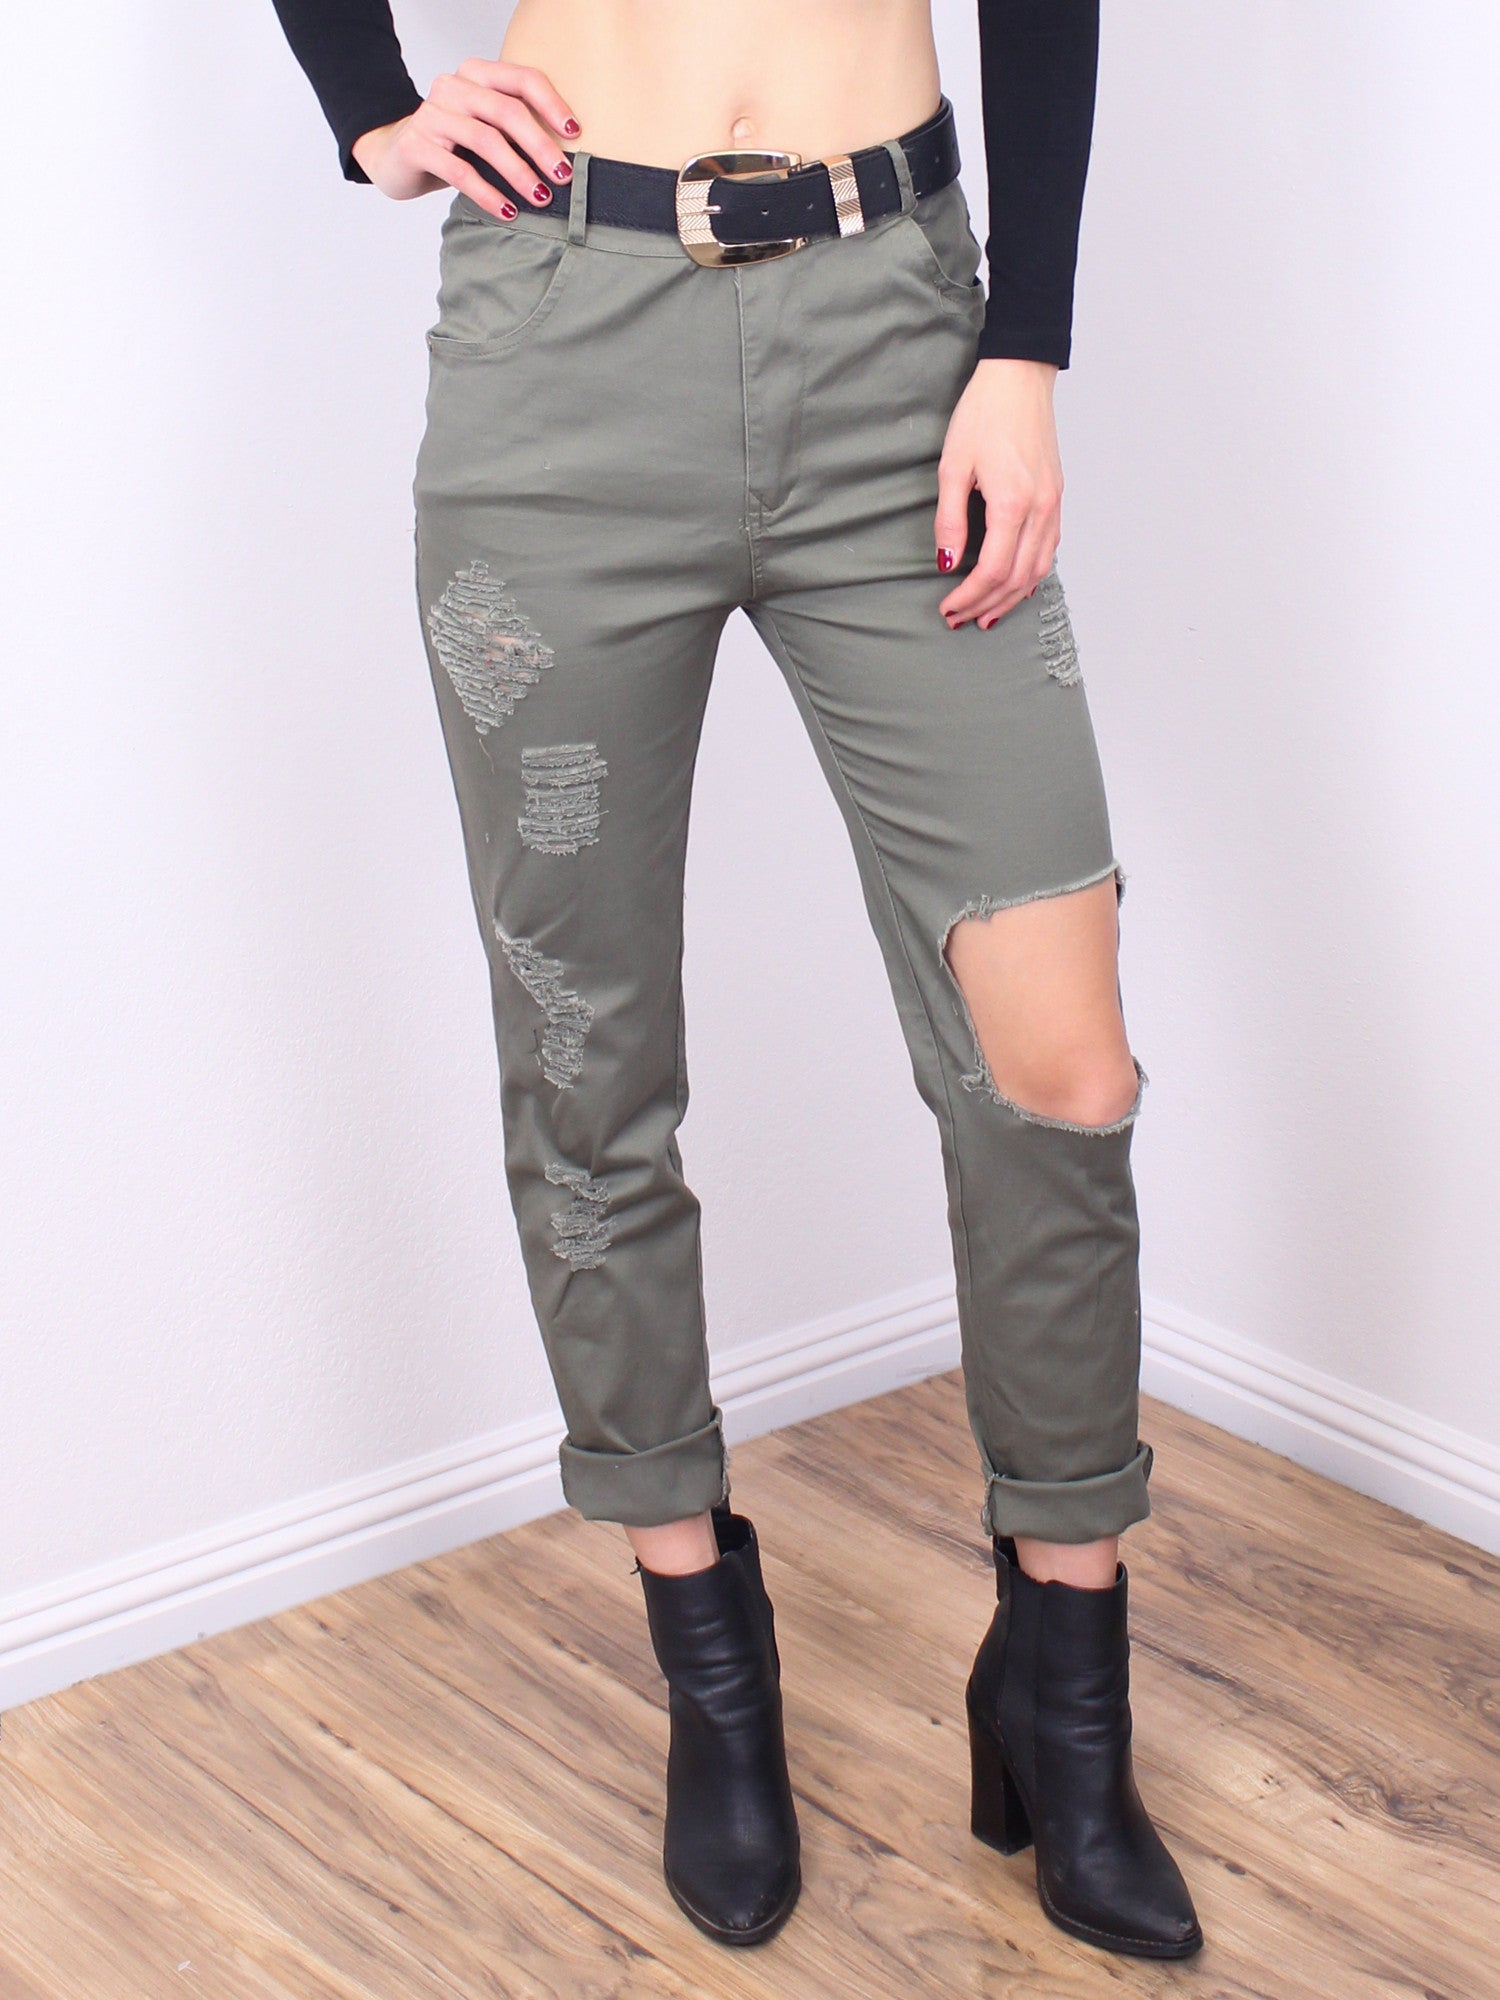 Distressed Olive Jeans - Gold Soul - 2